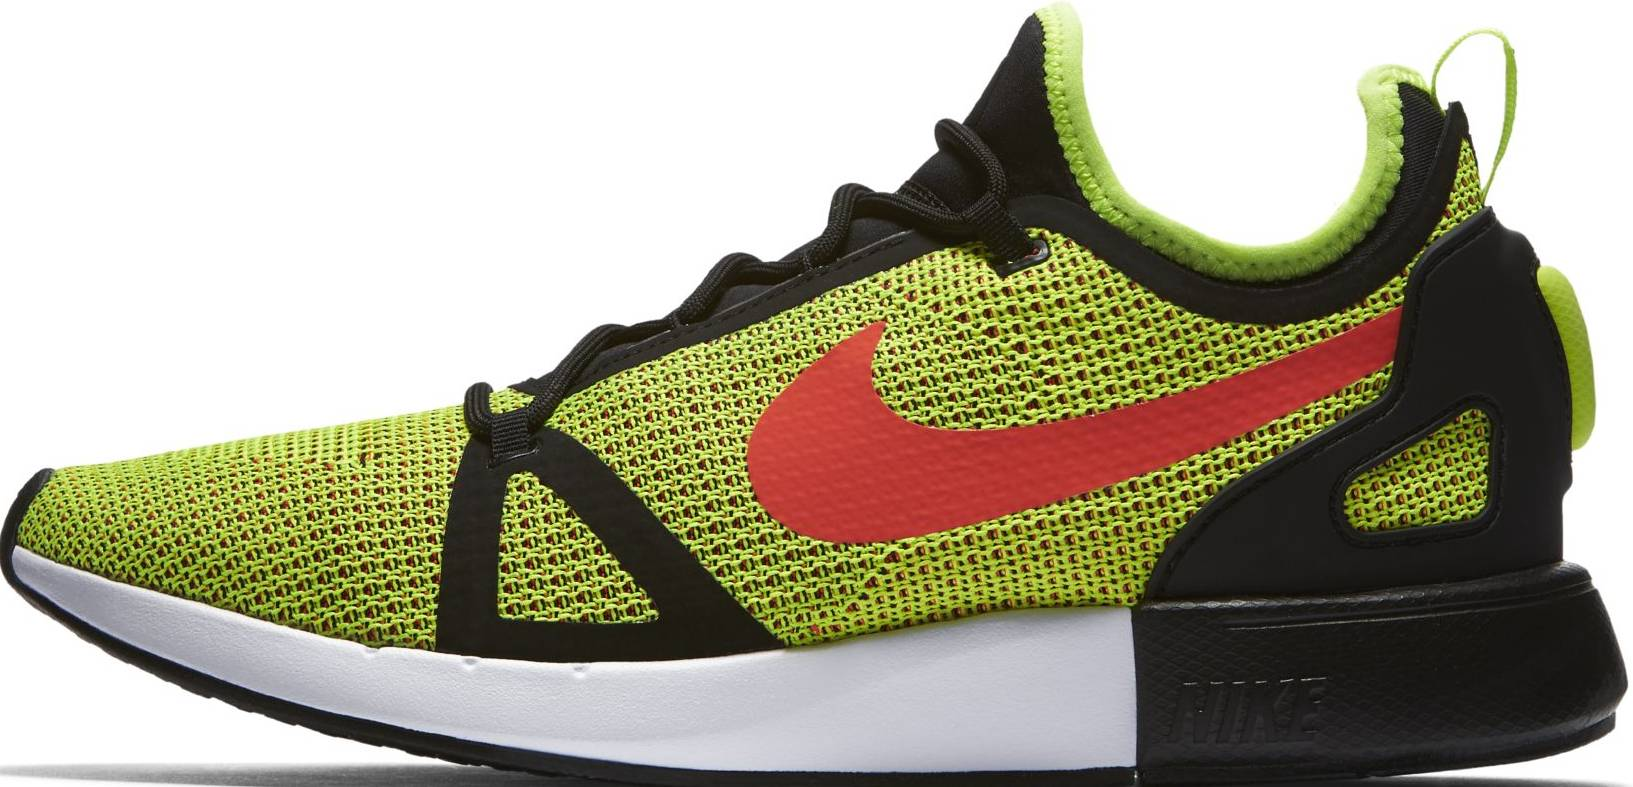 Save 14% on Green Flywire Sneakers (6